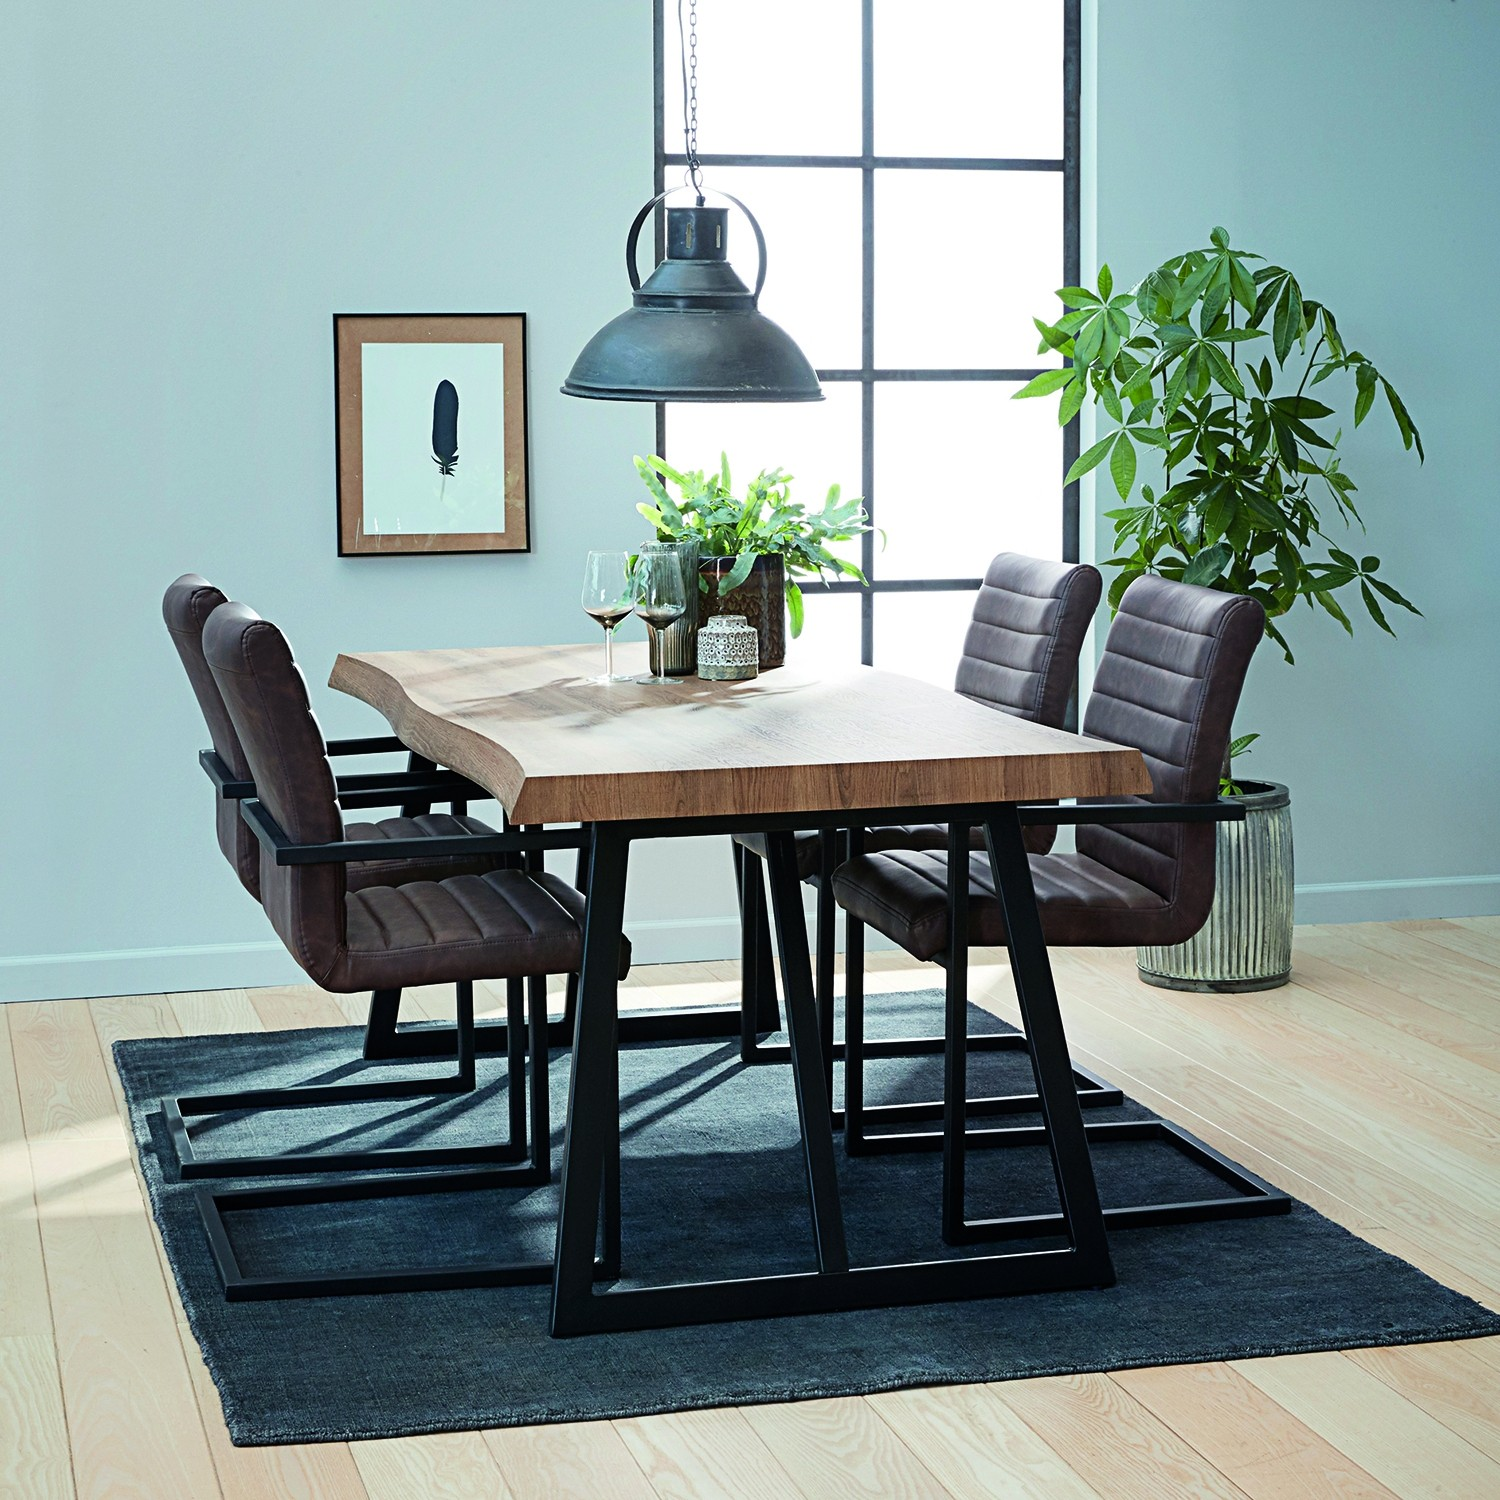 Casa Melbourne Table & 4 Chairs Dining Set | Leekes